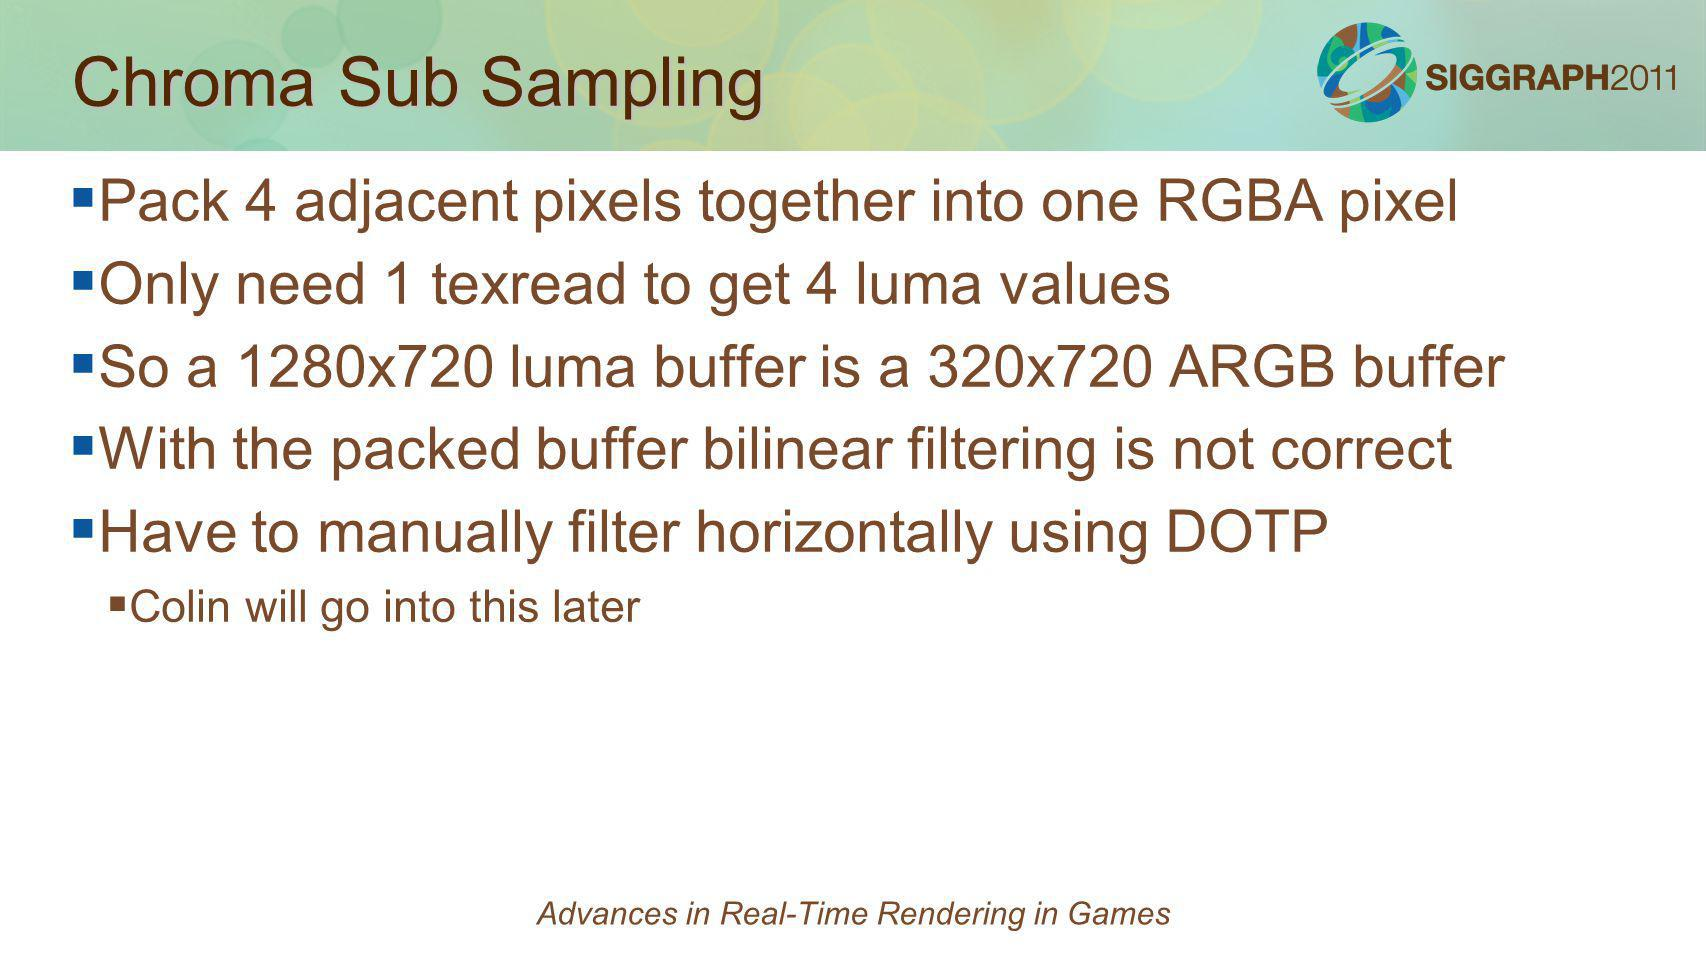 Chroma Sub Sampling Pack 4 adjacent pixels together into one RGBA pixel Only need 1 texread to get 4 luma values So a 1280x720 luma buffer is a 320x72